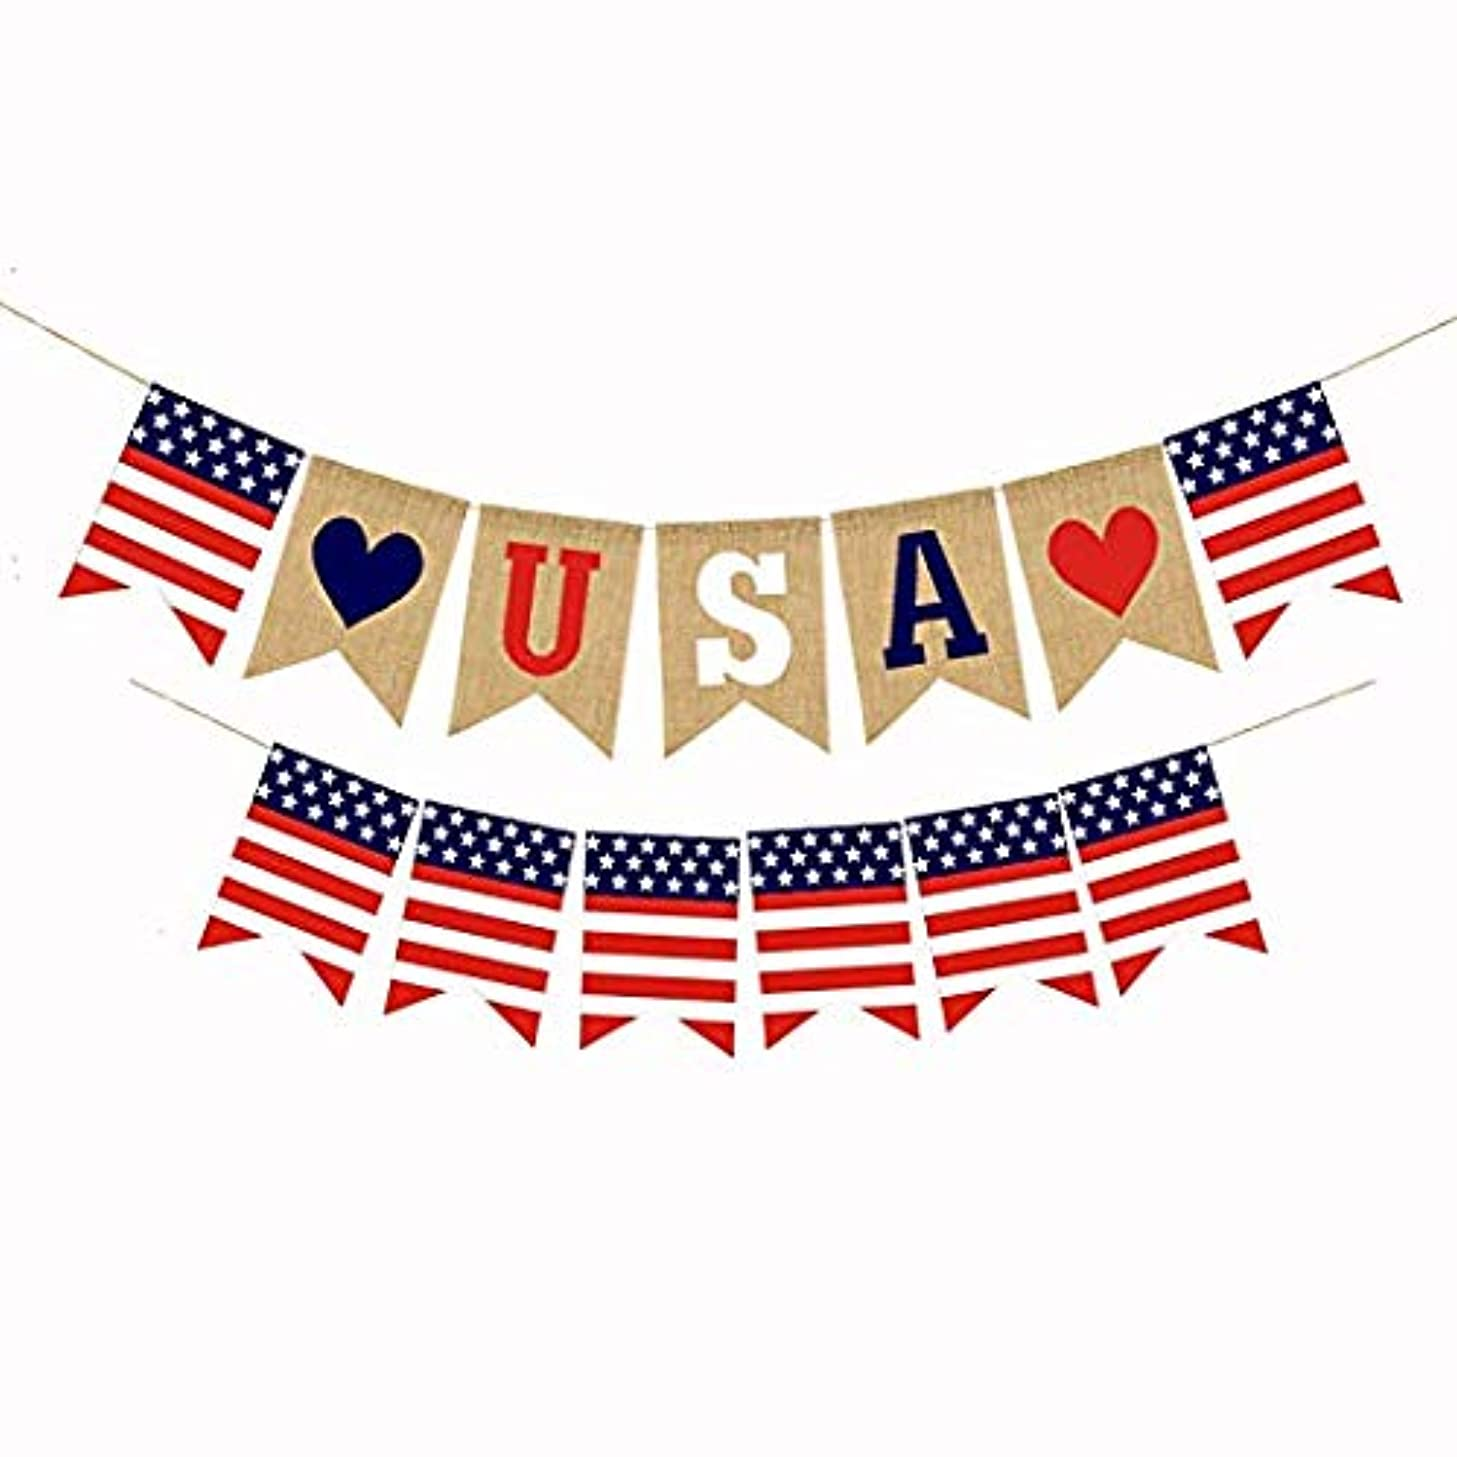 American Burlap Bunting 4th of July Banner Independence Day Decoration White and Blue Stars Banner for 4th of July Décor (TypeB)